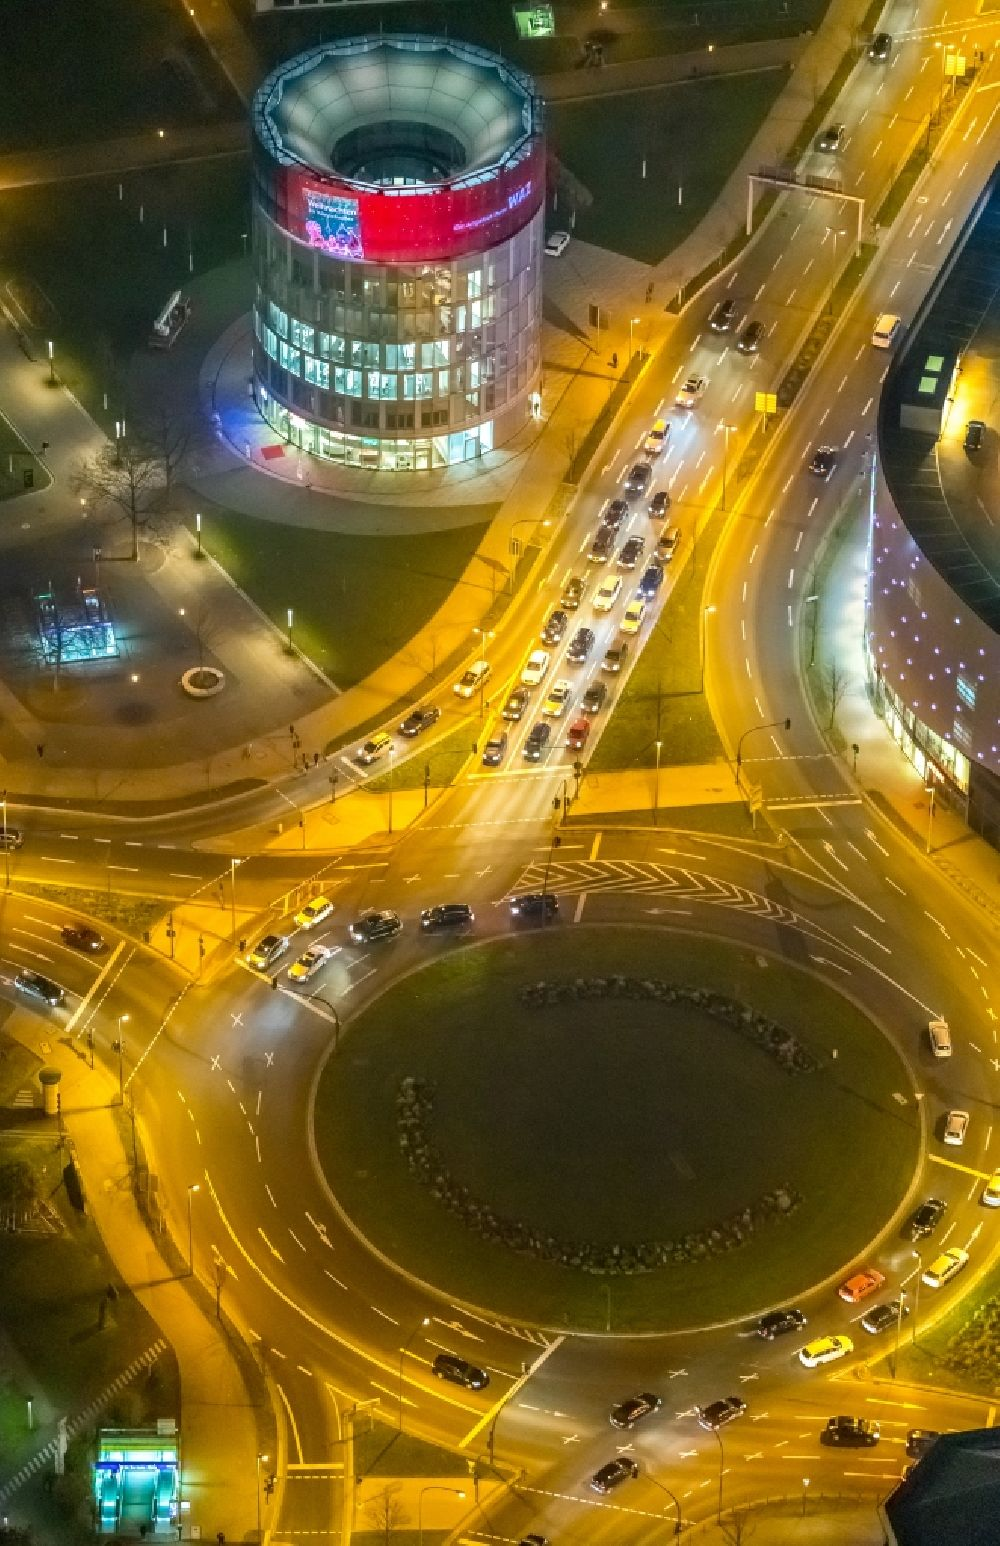 Aerial photograph at night Essen - Night lighting traffic management of the roundabout road Berliner Platz - Osterfeldstrasse - Segerothstrasse in the district Westviertel in Essen in the state North Rhine-Westphalia, Germany